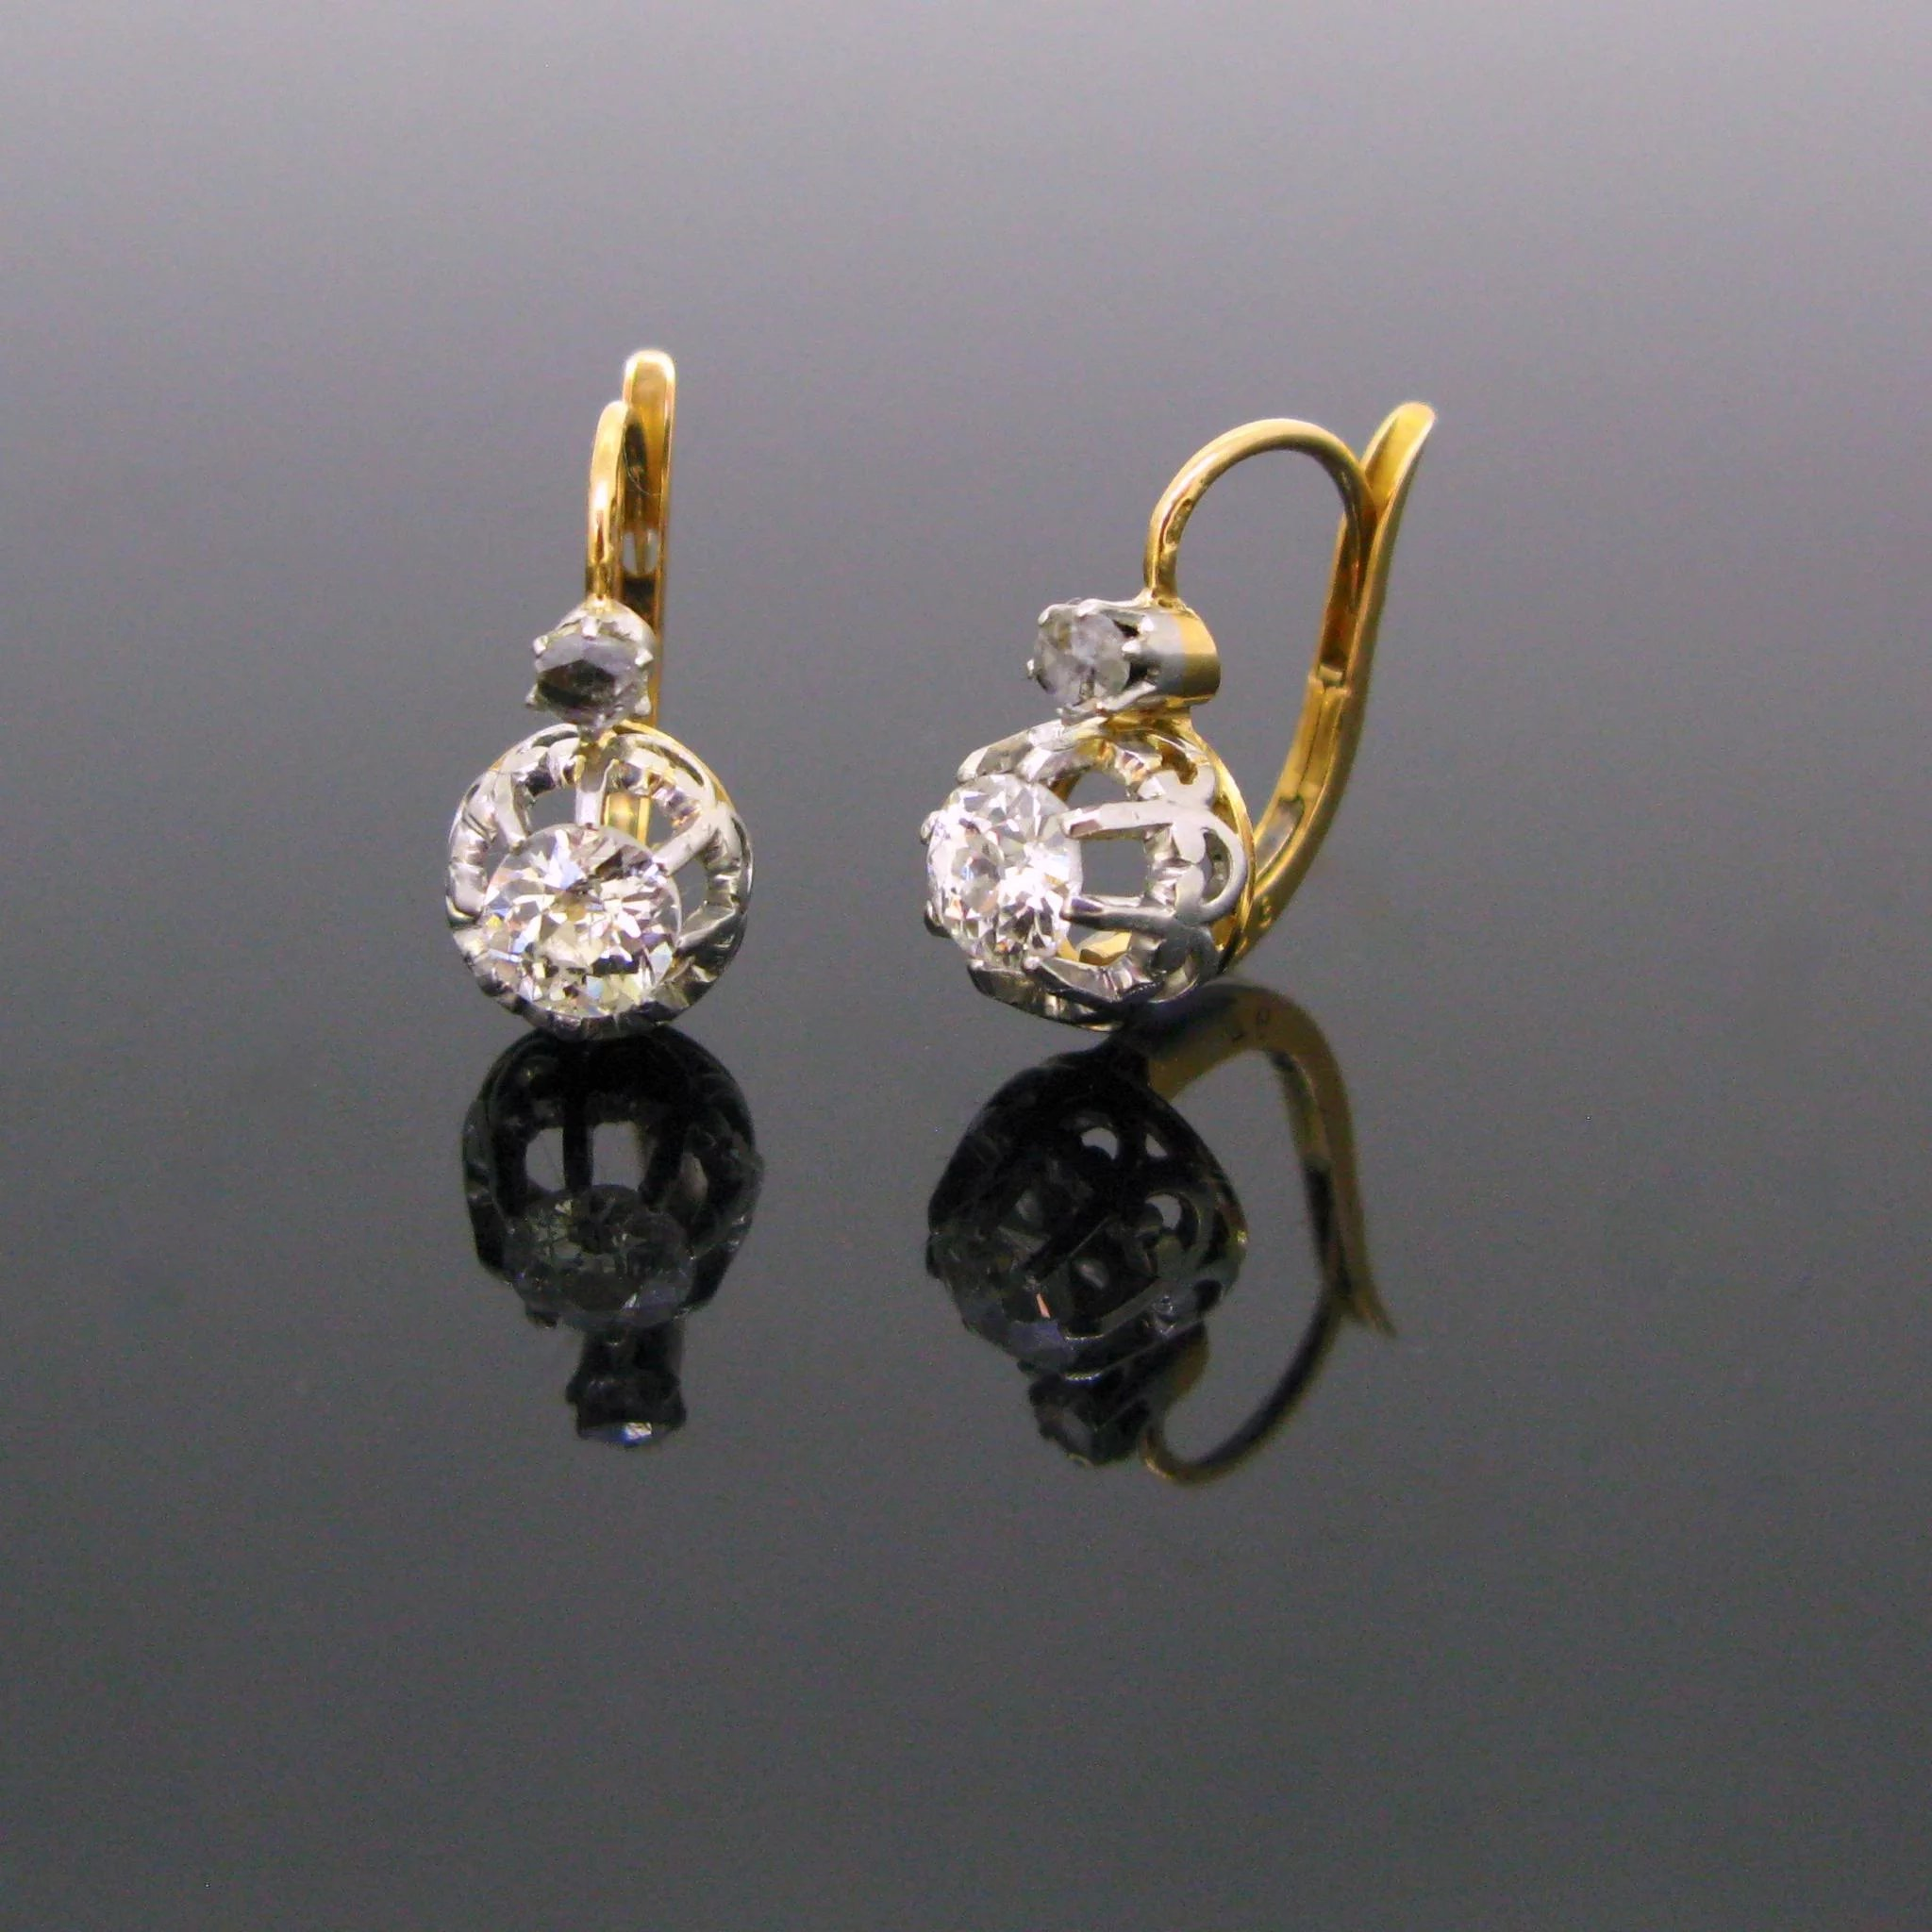 tot pair cts earrings en bukobject bukowskis diamond of fullsize a auctions cut antique